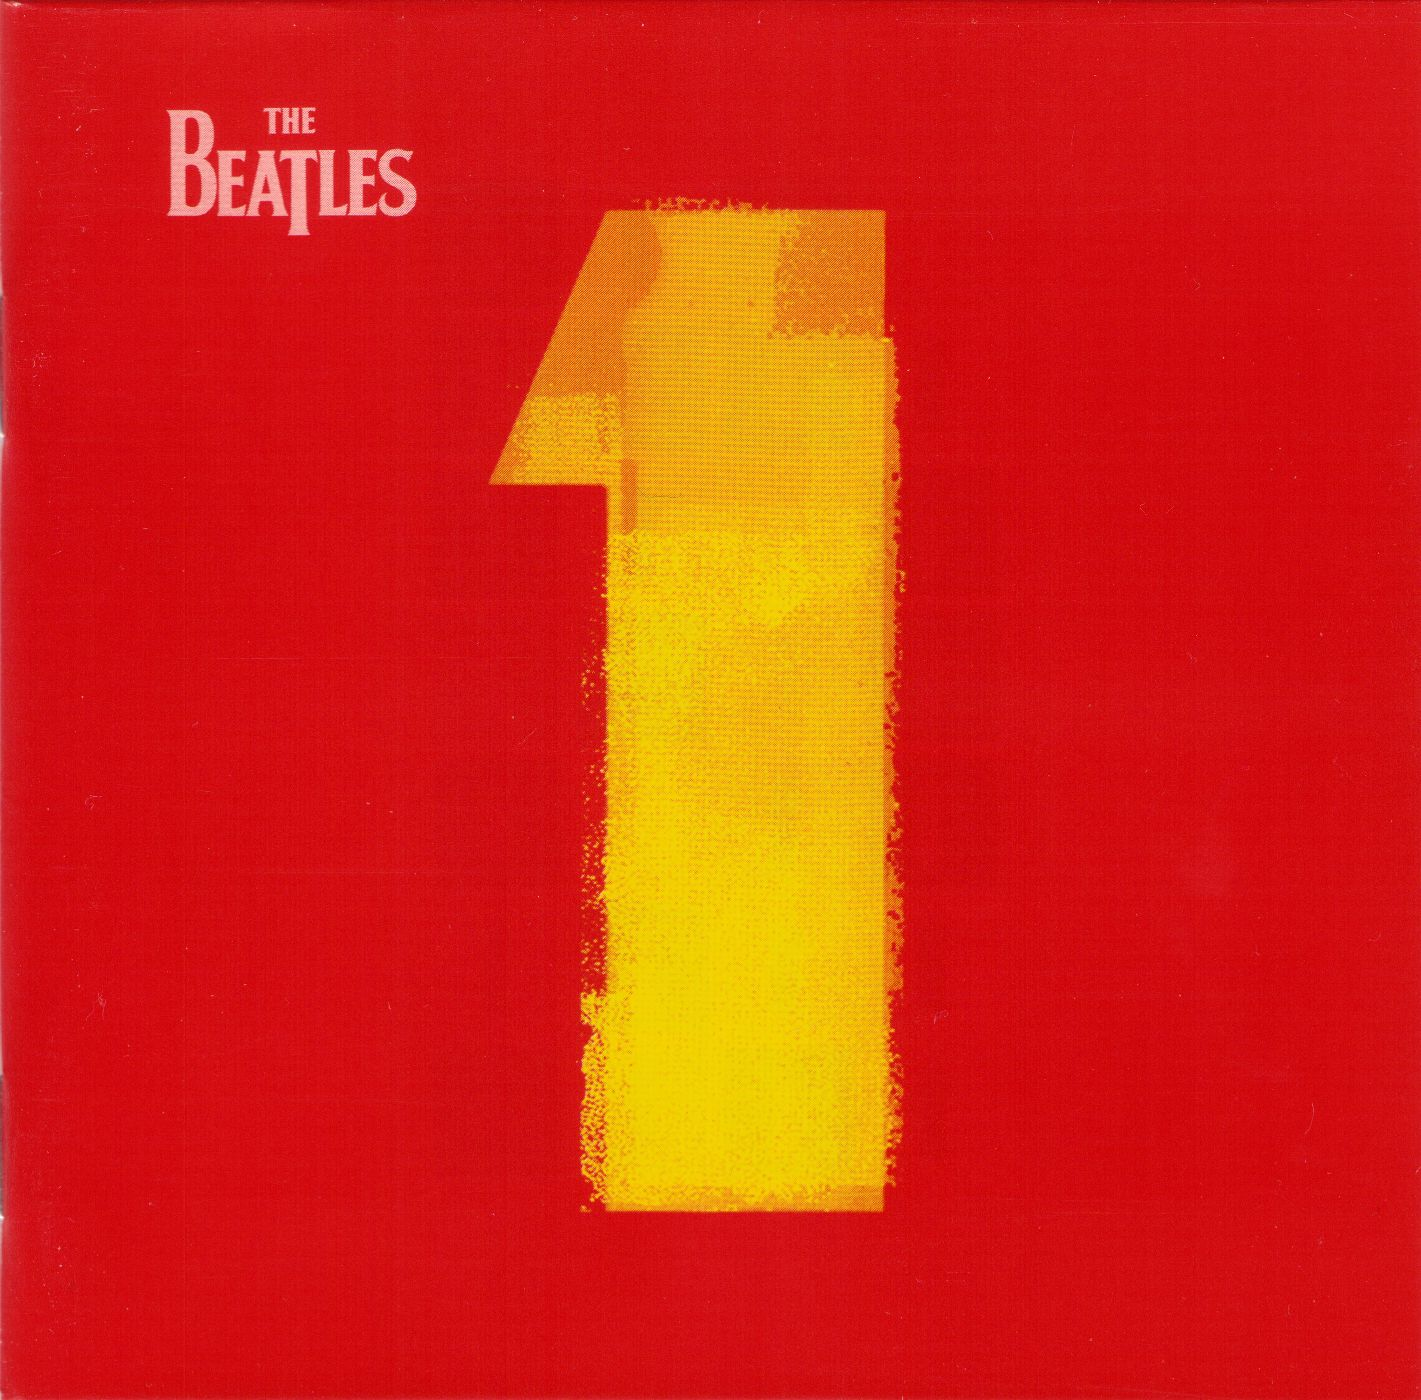 The Beatles - 1 album cover